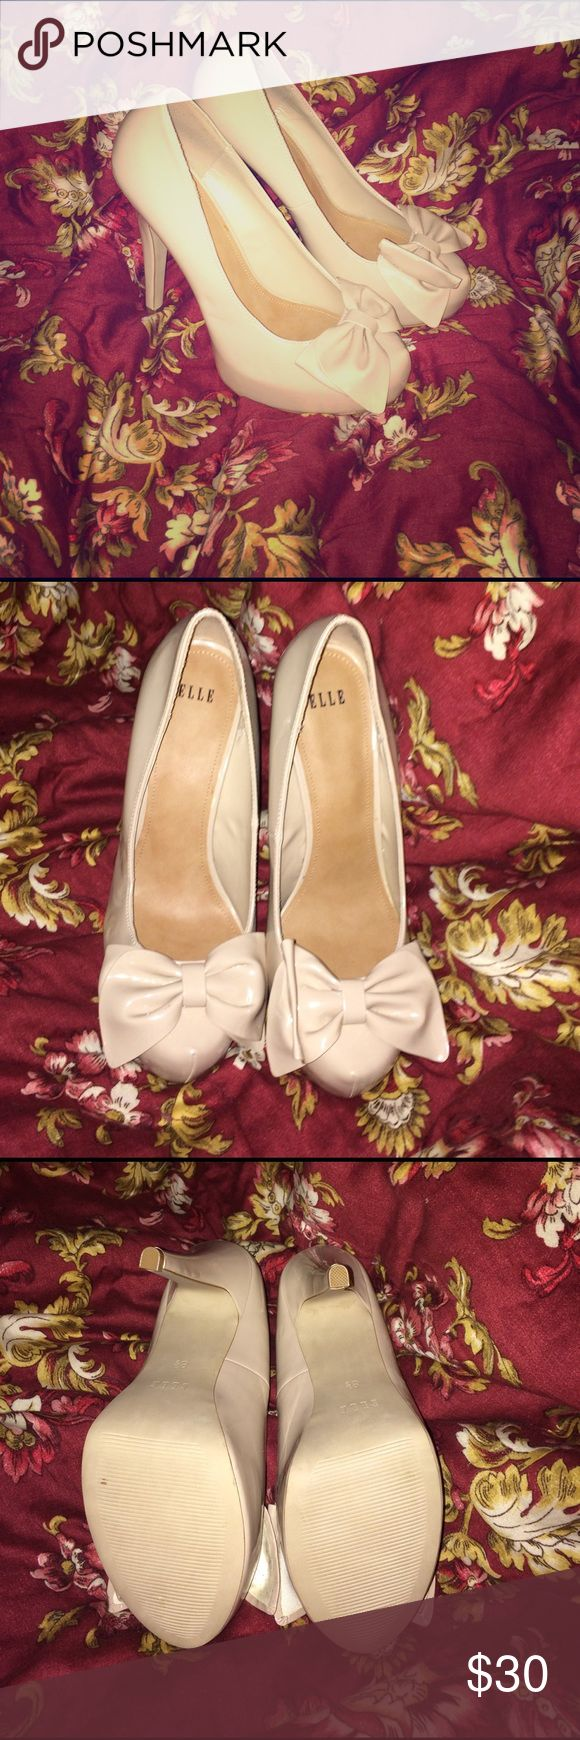 Nude Elle high heels nude colored ELLE high heels never worn outside, only around the house Elle Shoes Heels